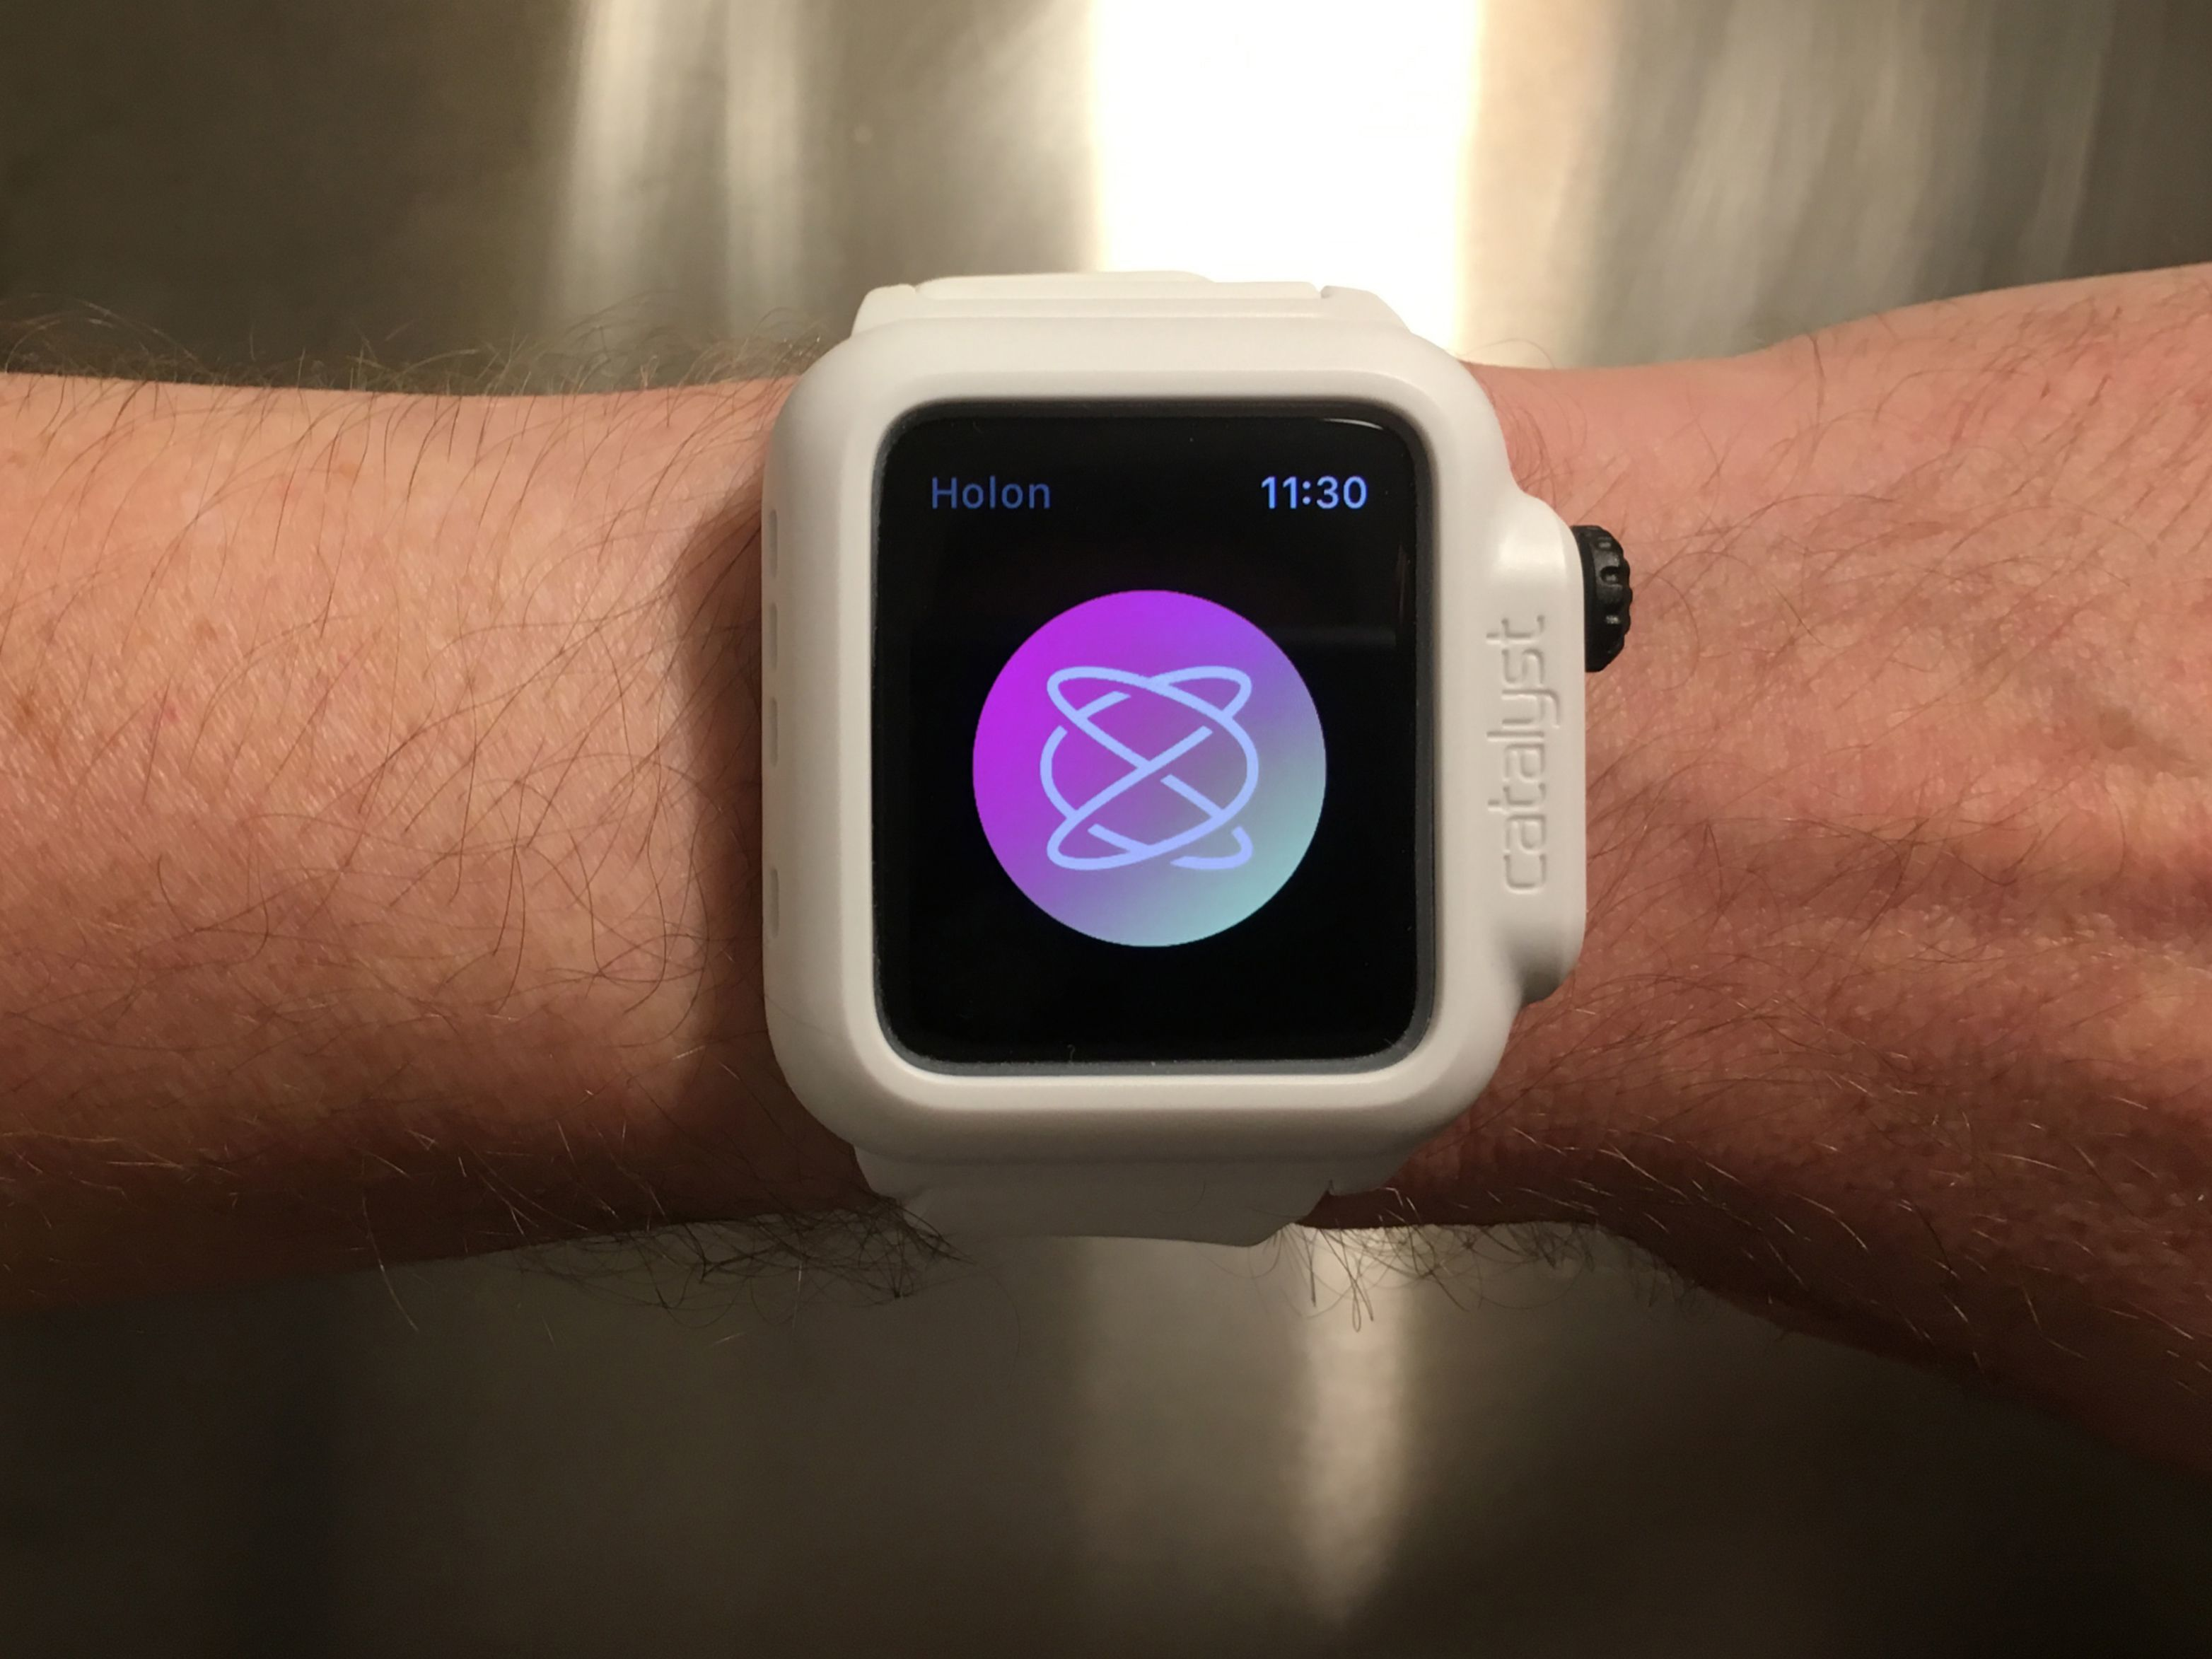 Holon apple watch app